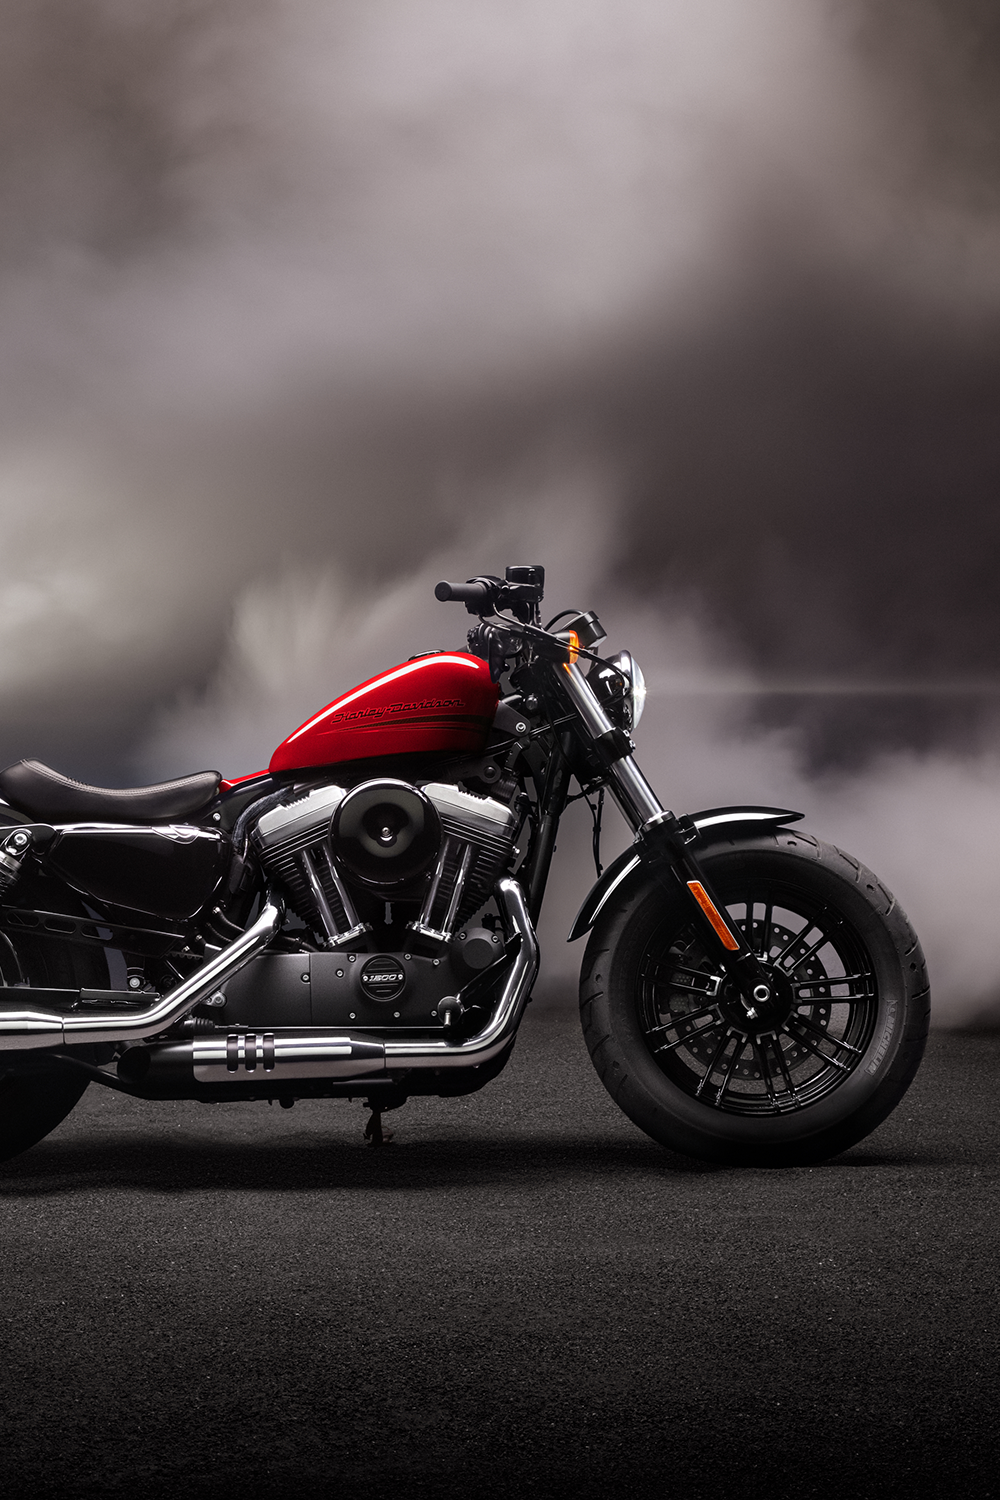 Pin By Harley Davidson On 2020 Motorcycle Line Up Harley Davidson Harley Davidson Motorcycles Motorcycle Harley Harley Davidson